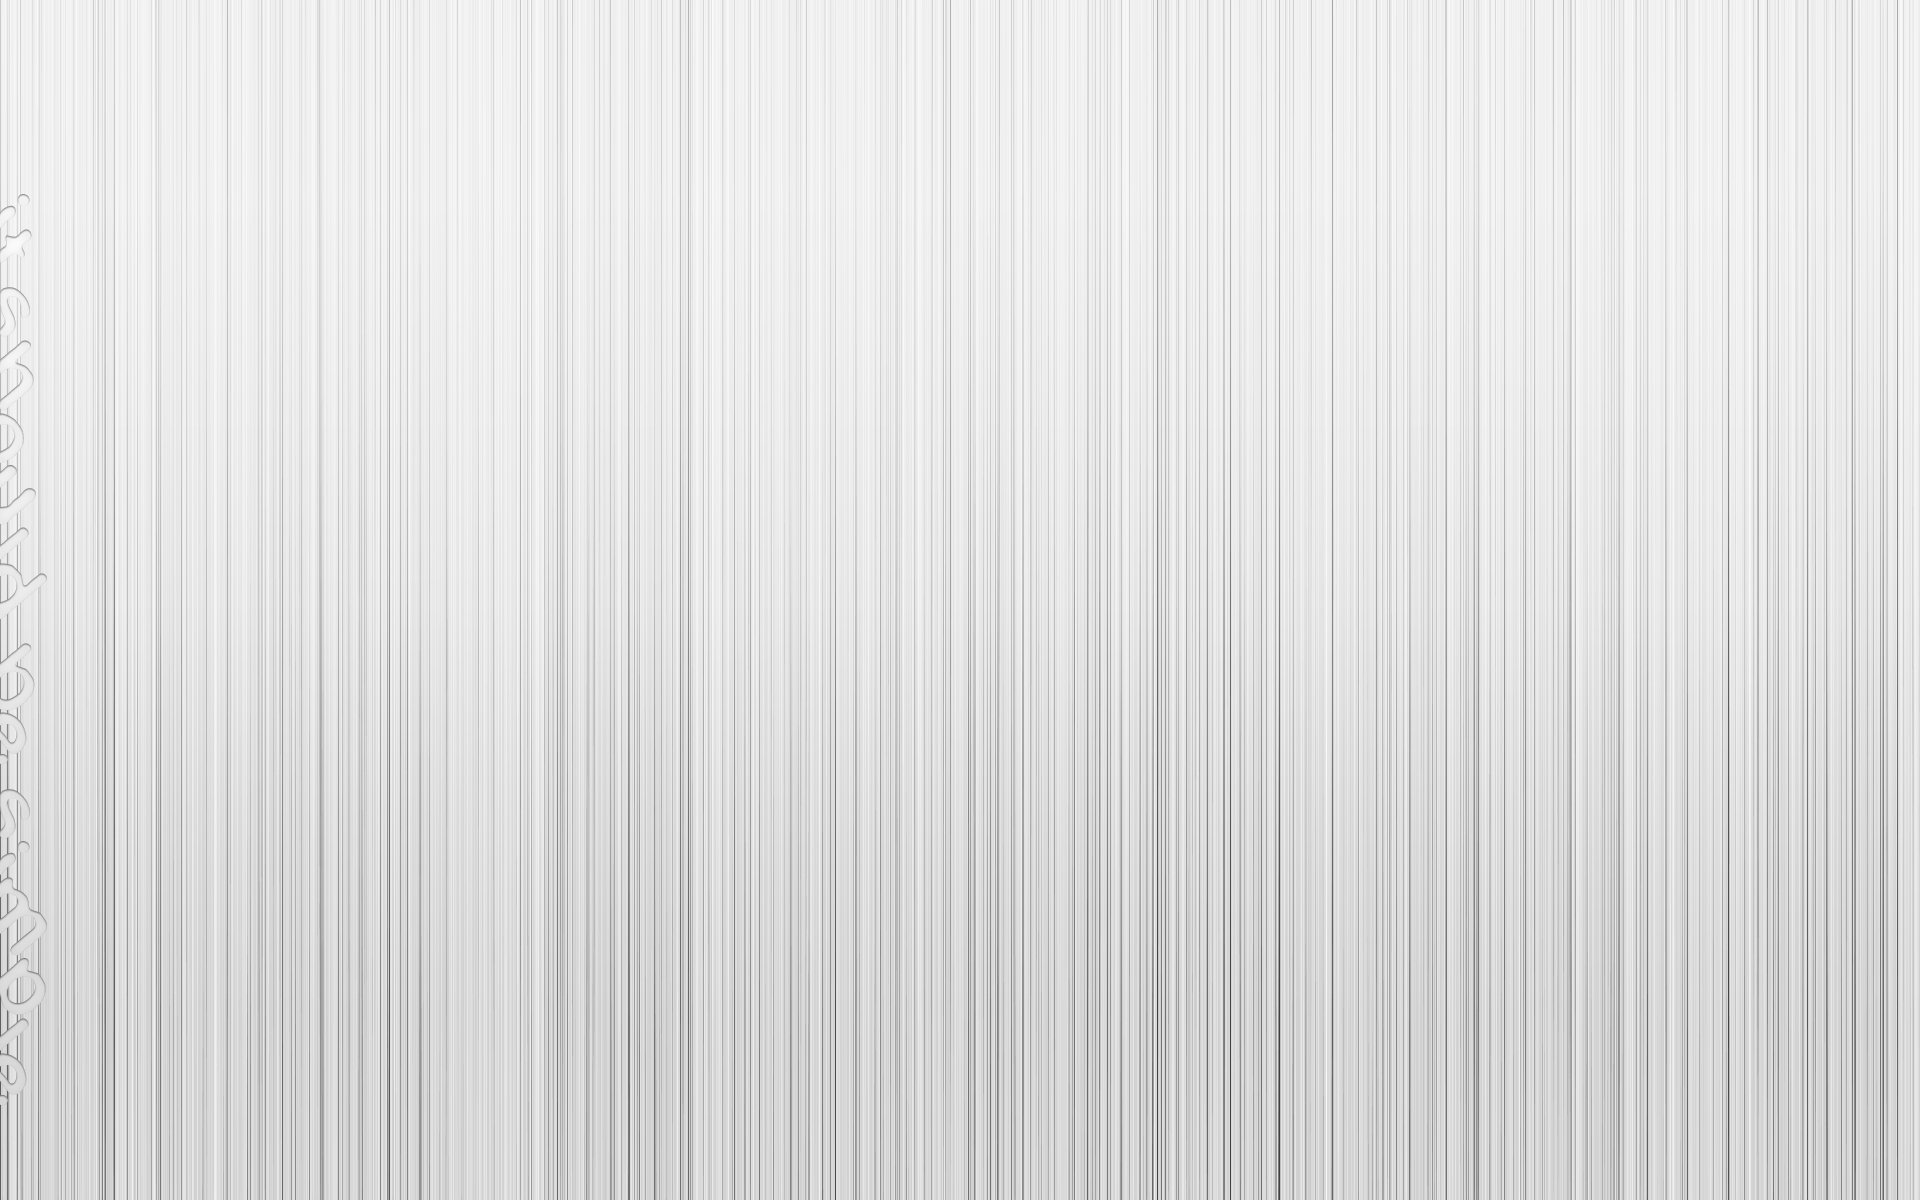 Download 52 Clean White Wallpapers For Desktop Laptops 1920x1200